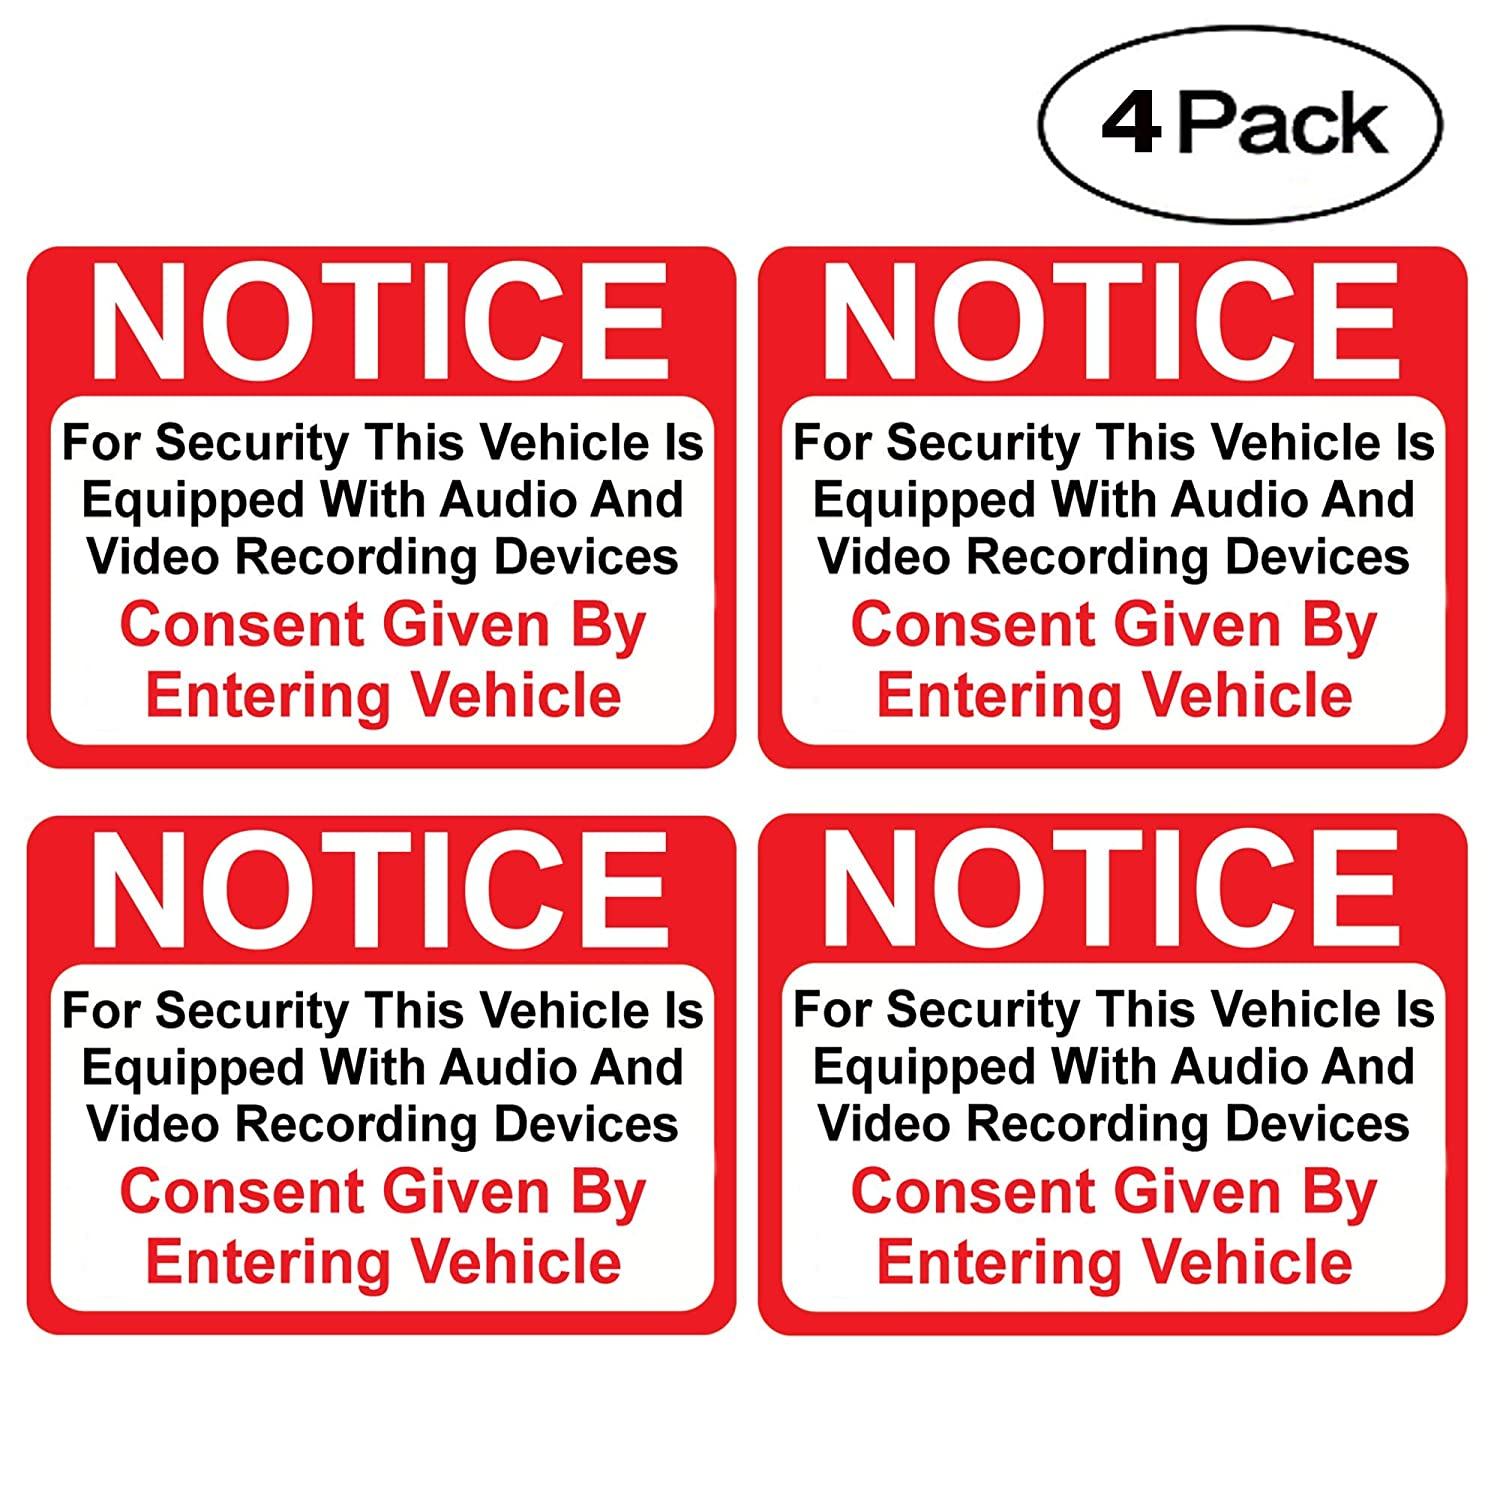 "(4 Pack) Notice Vehicle ist Equipped mit Audio und Video Recording Devices Consent durch Entering Sticker - selbst Adhesive 2&Frac12; X 3&Frac12;"" 4 Mil Vinyl Decal &Mdash; Indoor & Outdoor Verwendung &Mdash; Uv Protected & Waterproof &Mdash;"